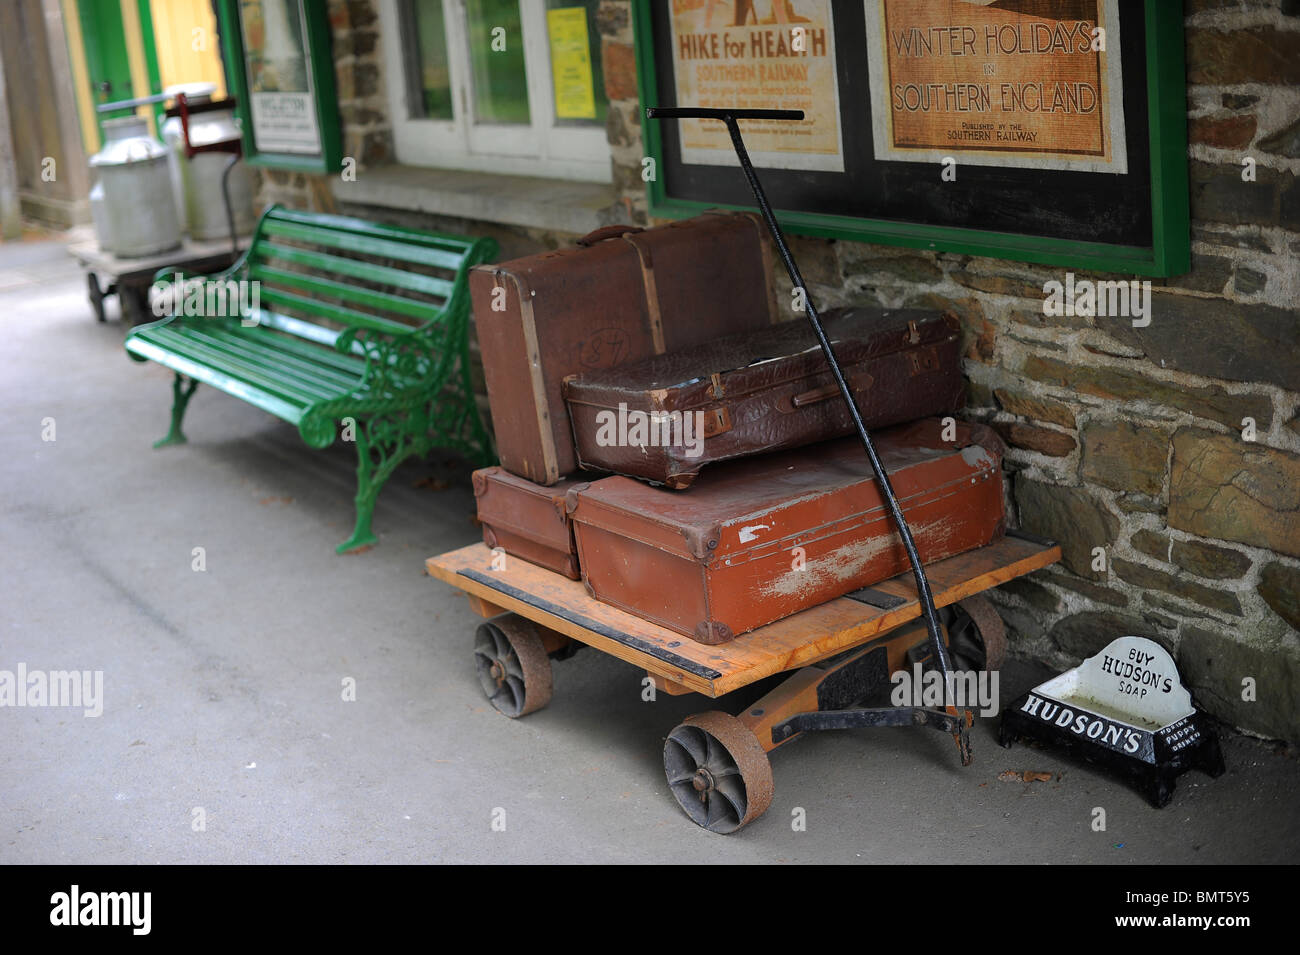 old antique luggage suitcases at Woody Bay station, north Devon - Stock Image